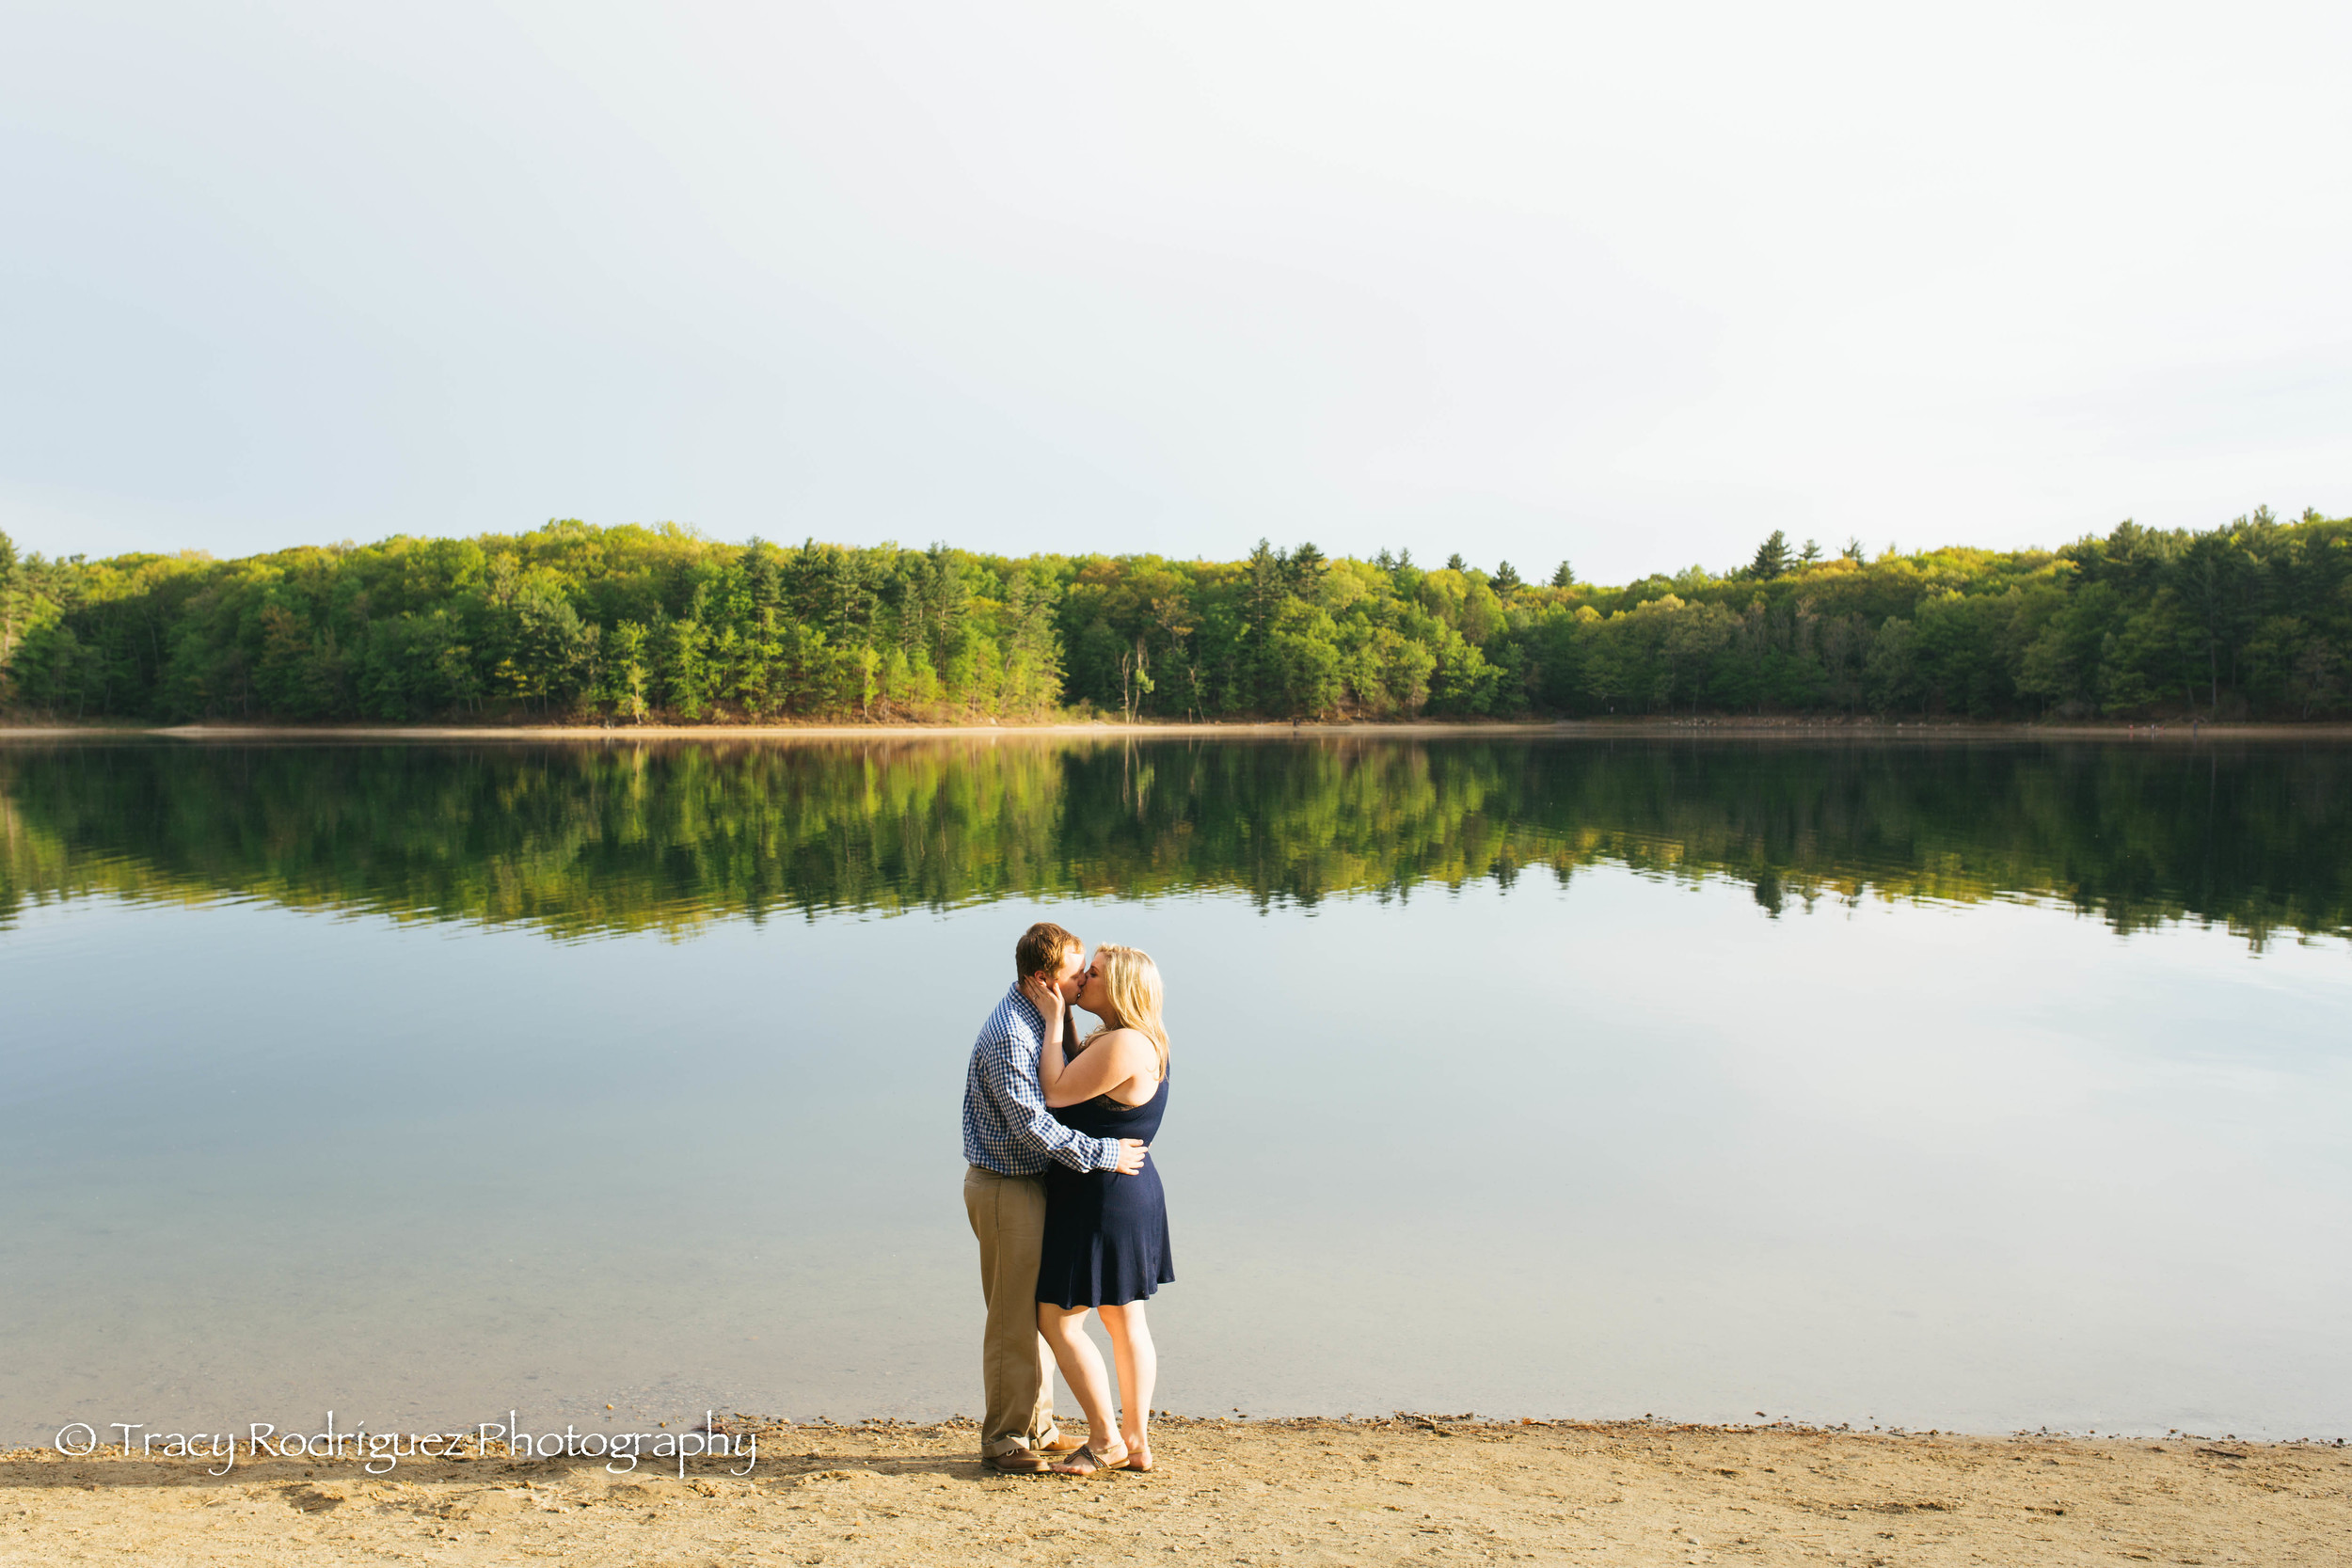 TracyRodriguezPhotography-Engagement-LowRes-43.jpg